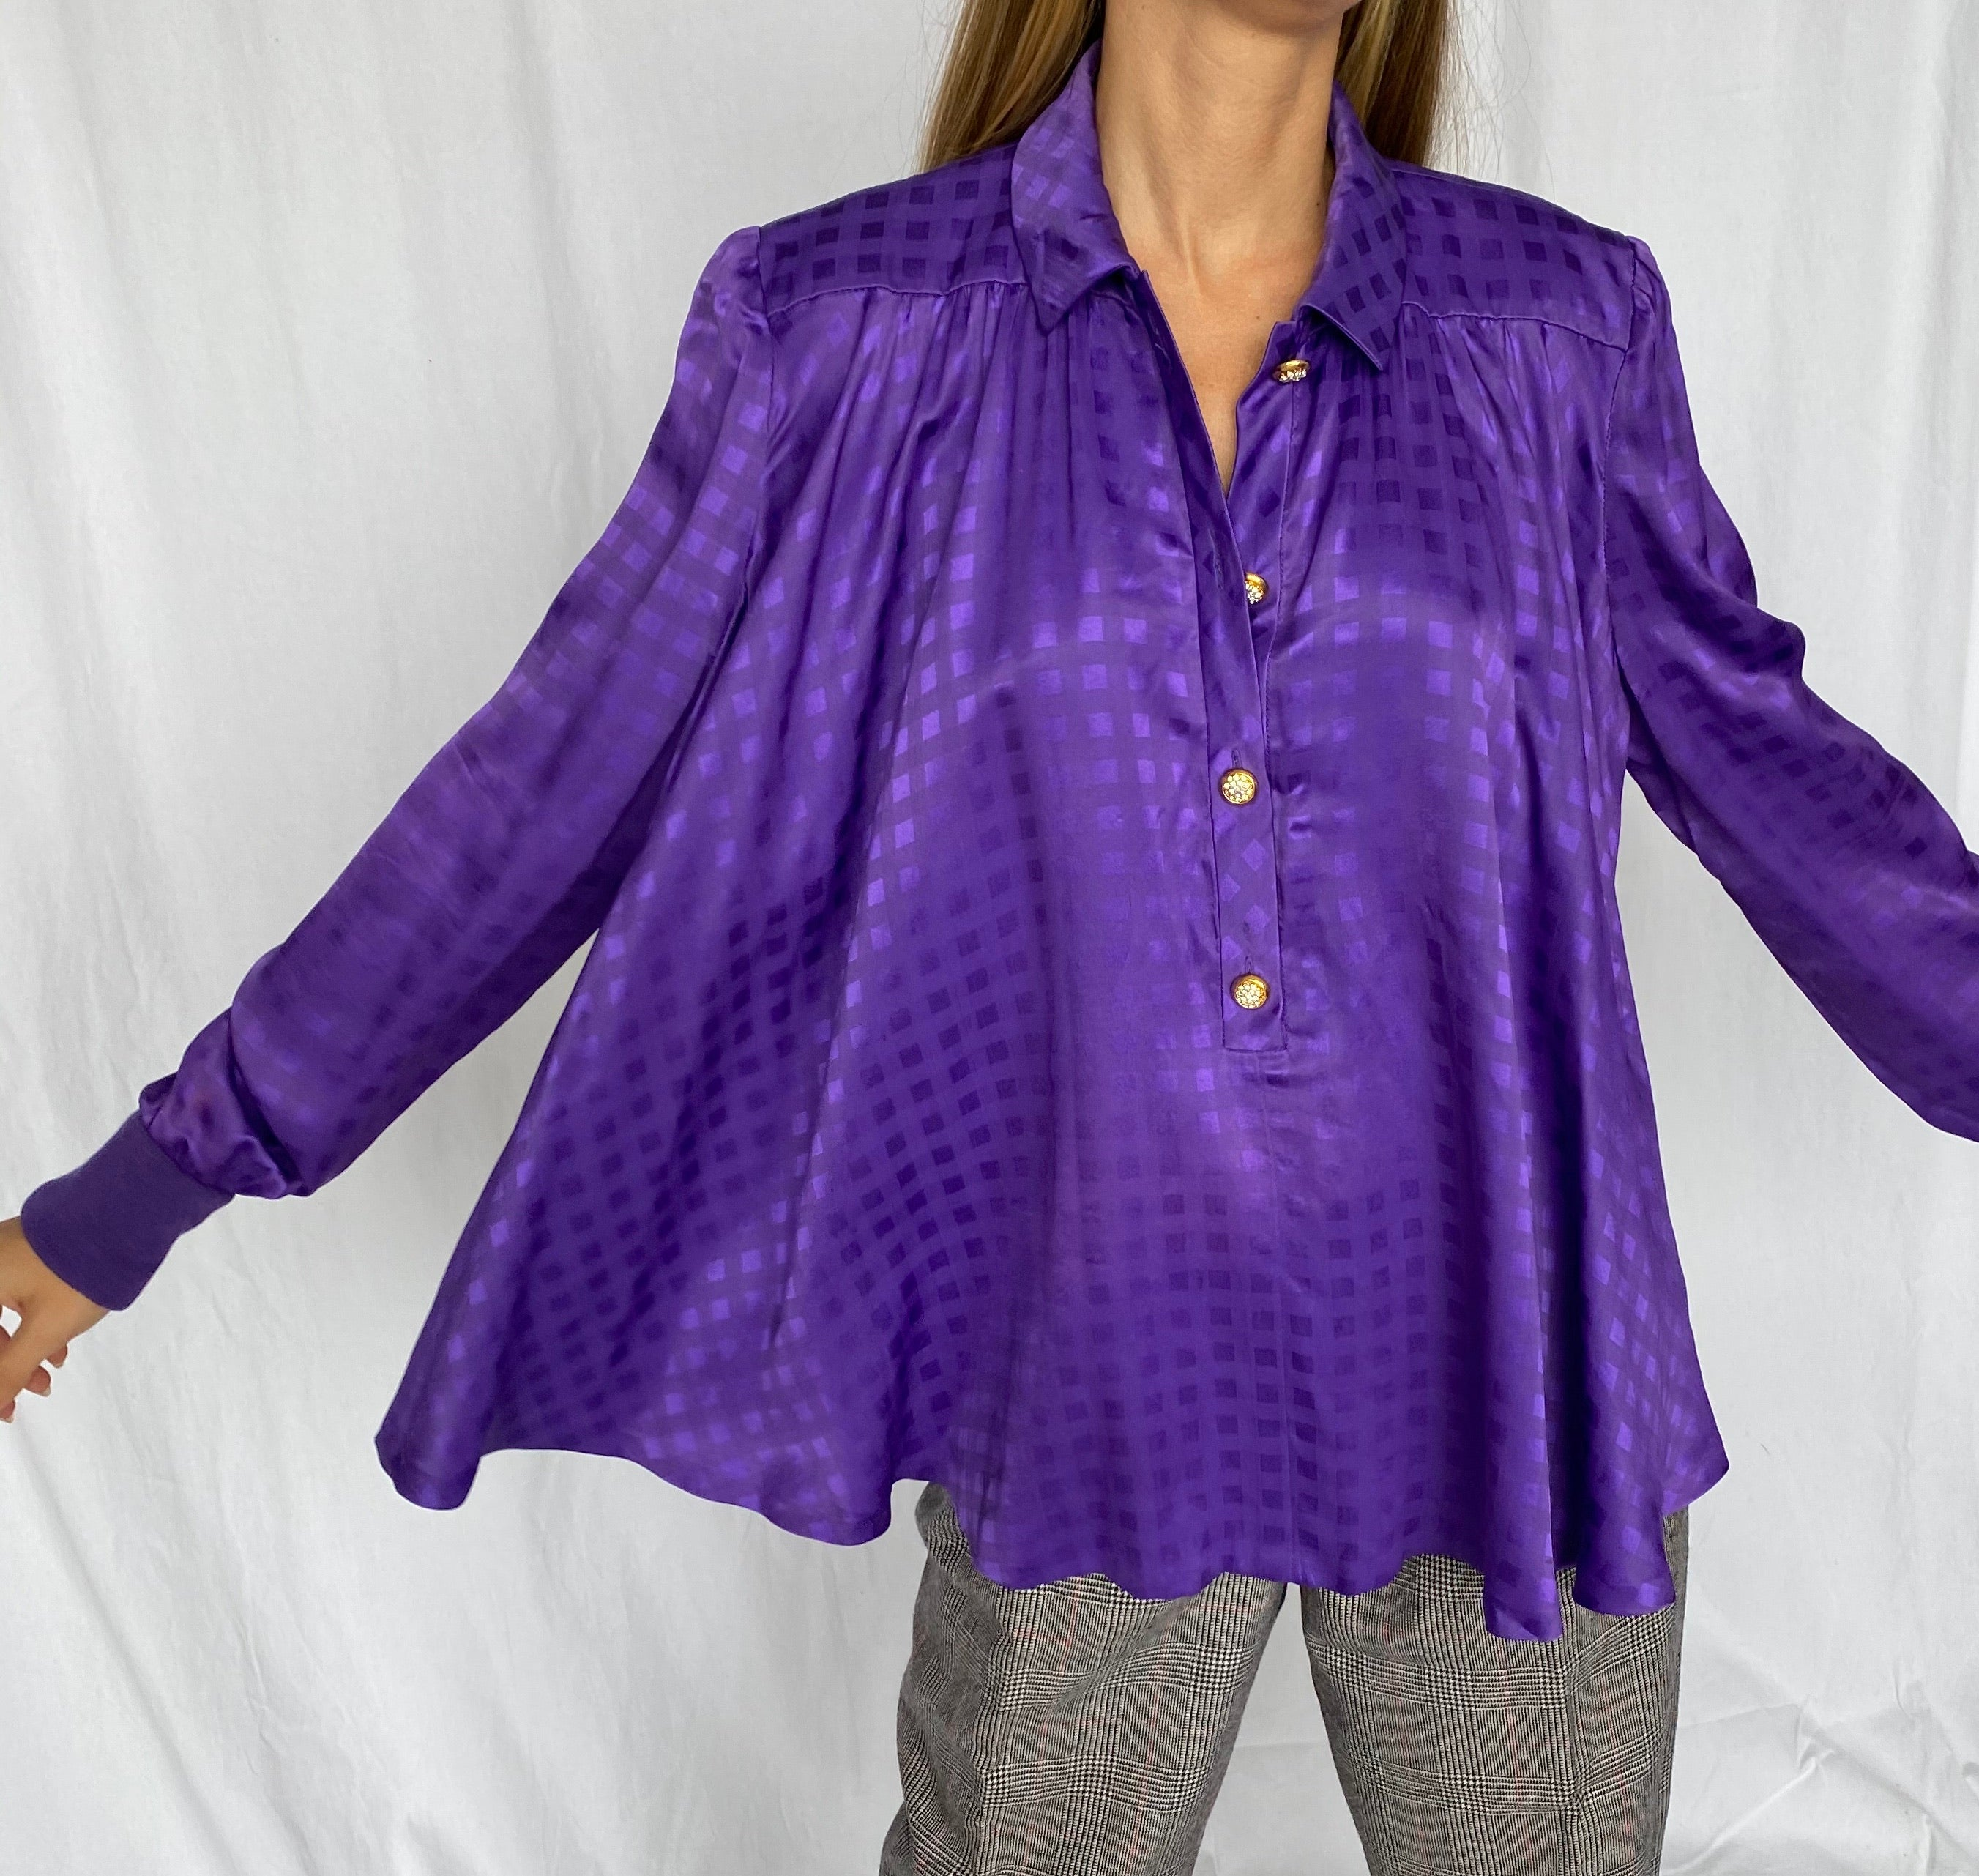 Valentino Night Satin Purple Gingham Rhinestone Swing Top S M